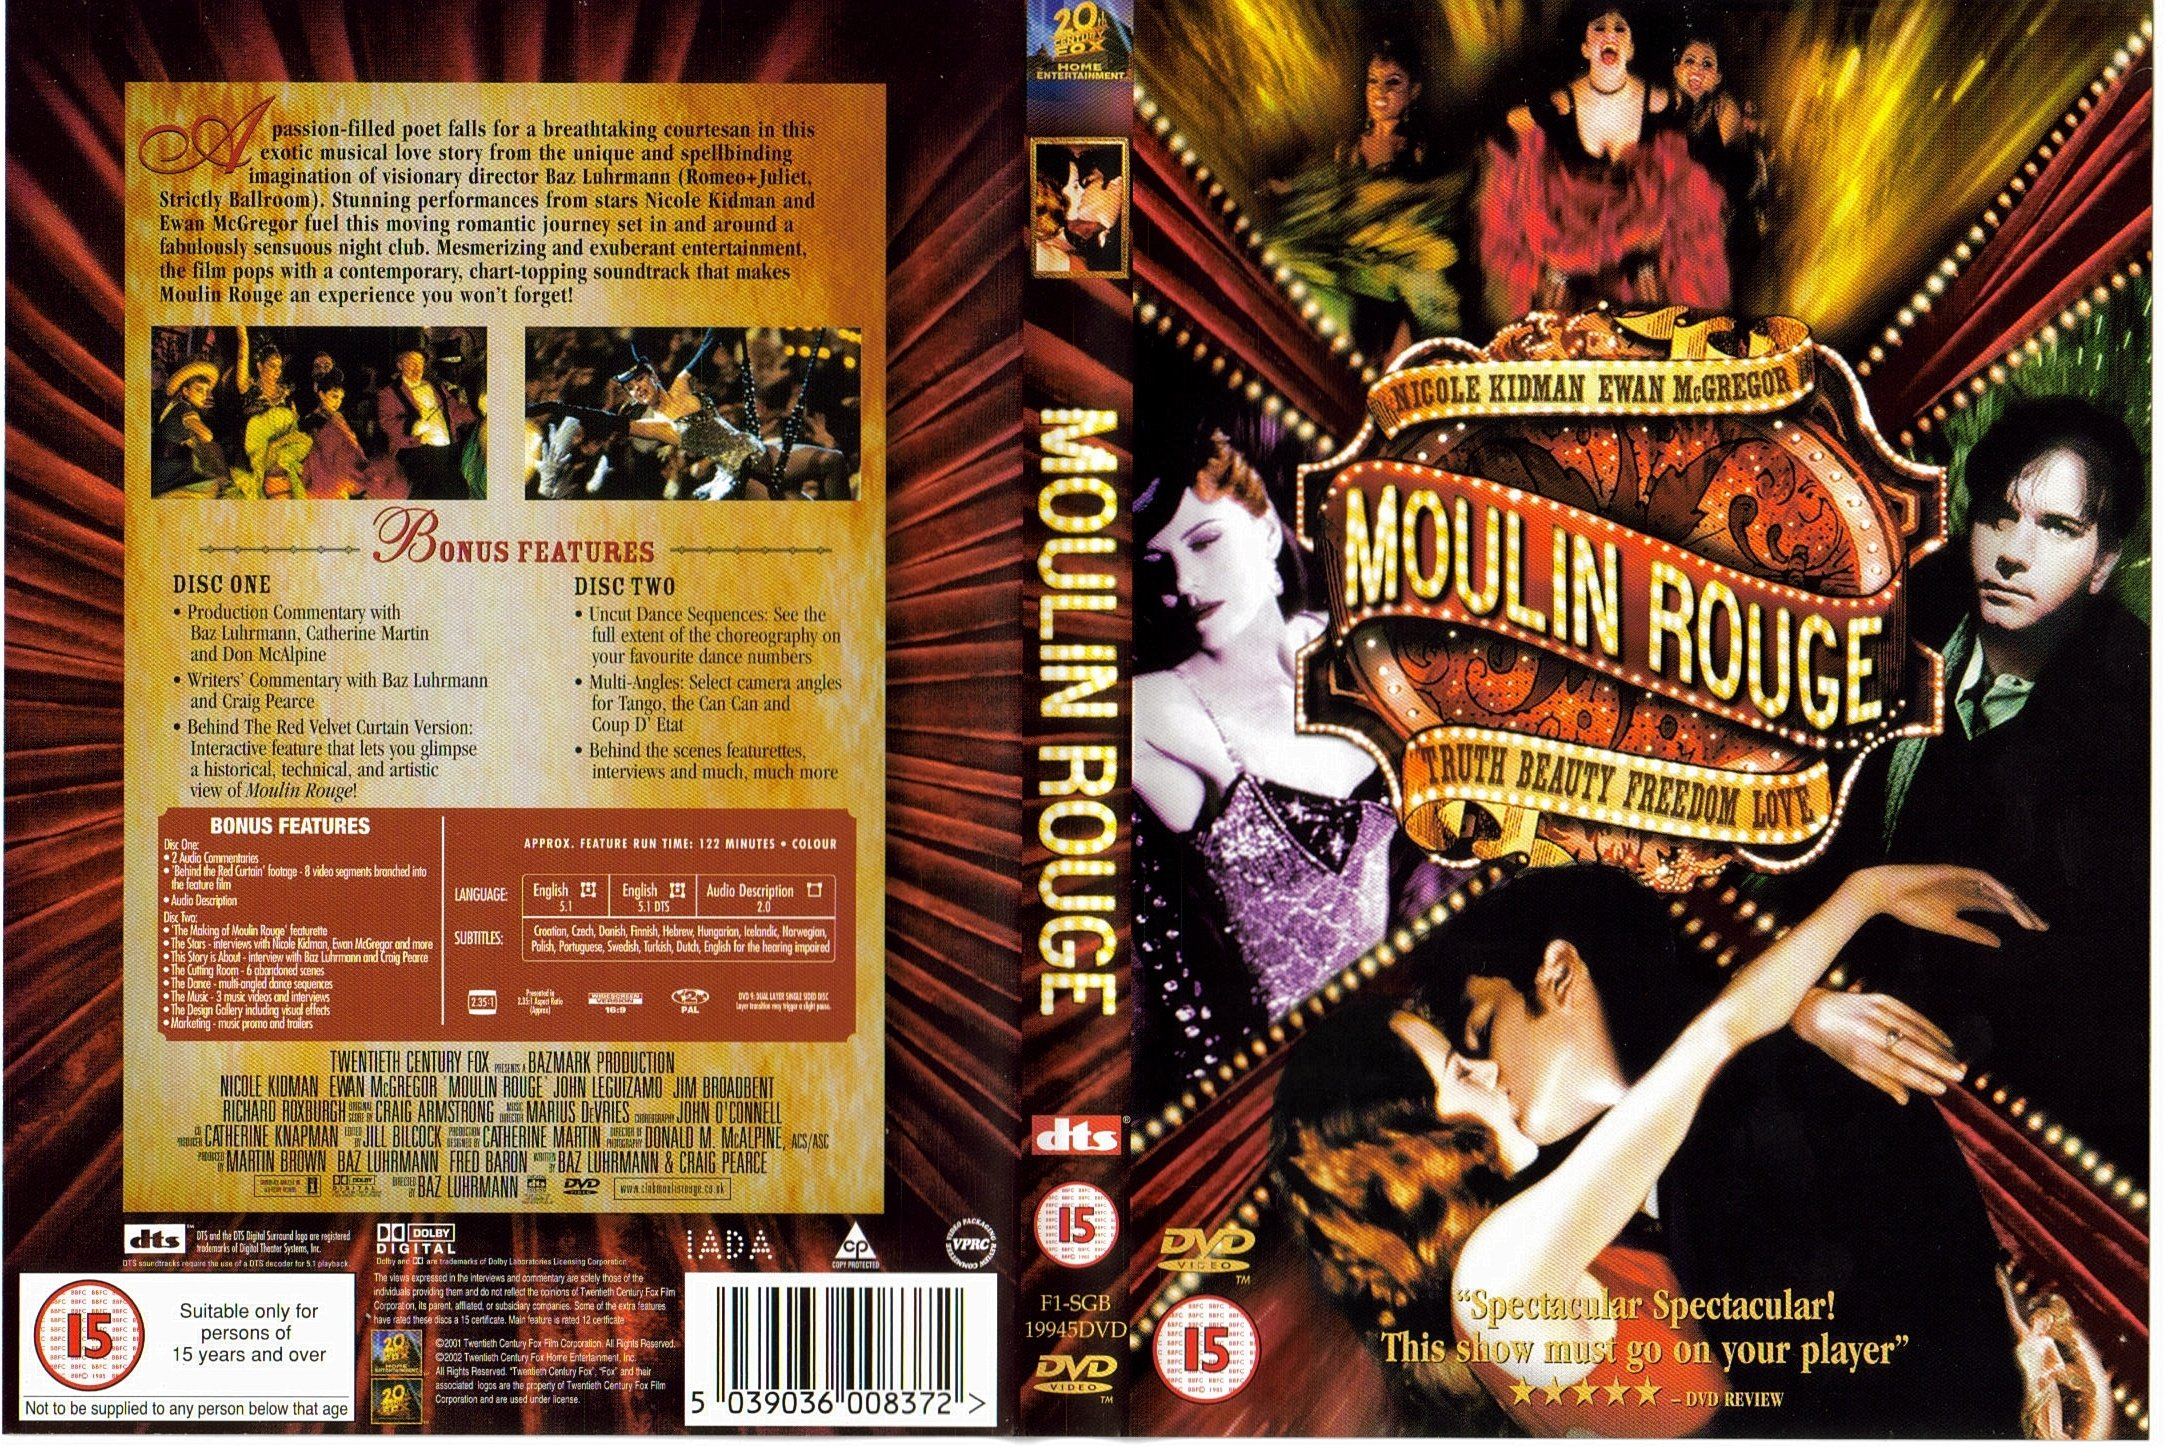 moulin rouge an expression of love The 2018 winter olympics may be over, but these memorable figure skating performances will live on, thanks to their music choices.